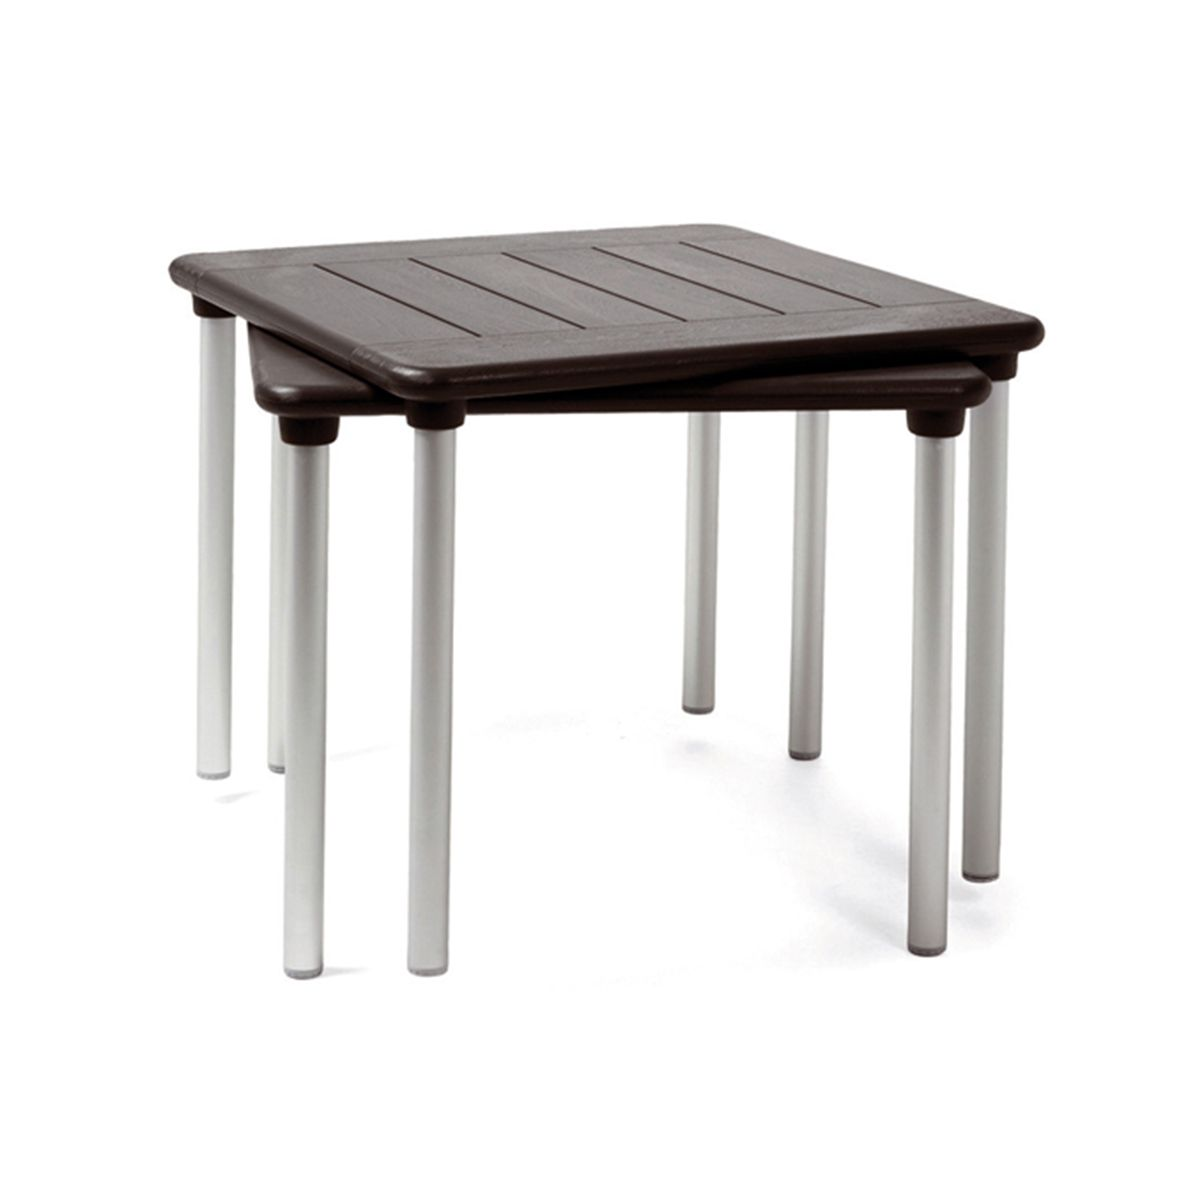 Table d appoint jardin terrasse maestrale nardi for Table de jardin terrasse